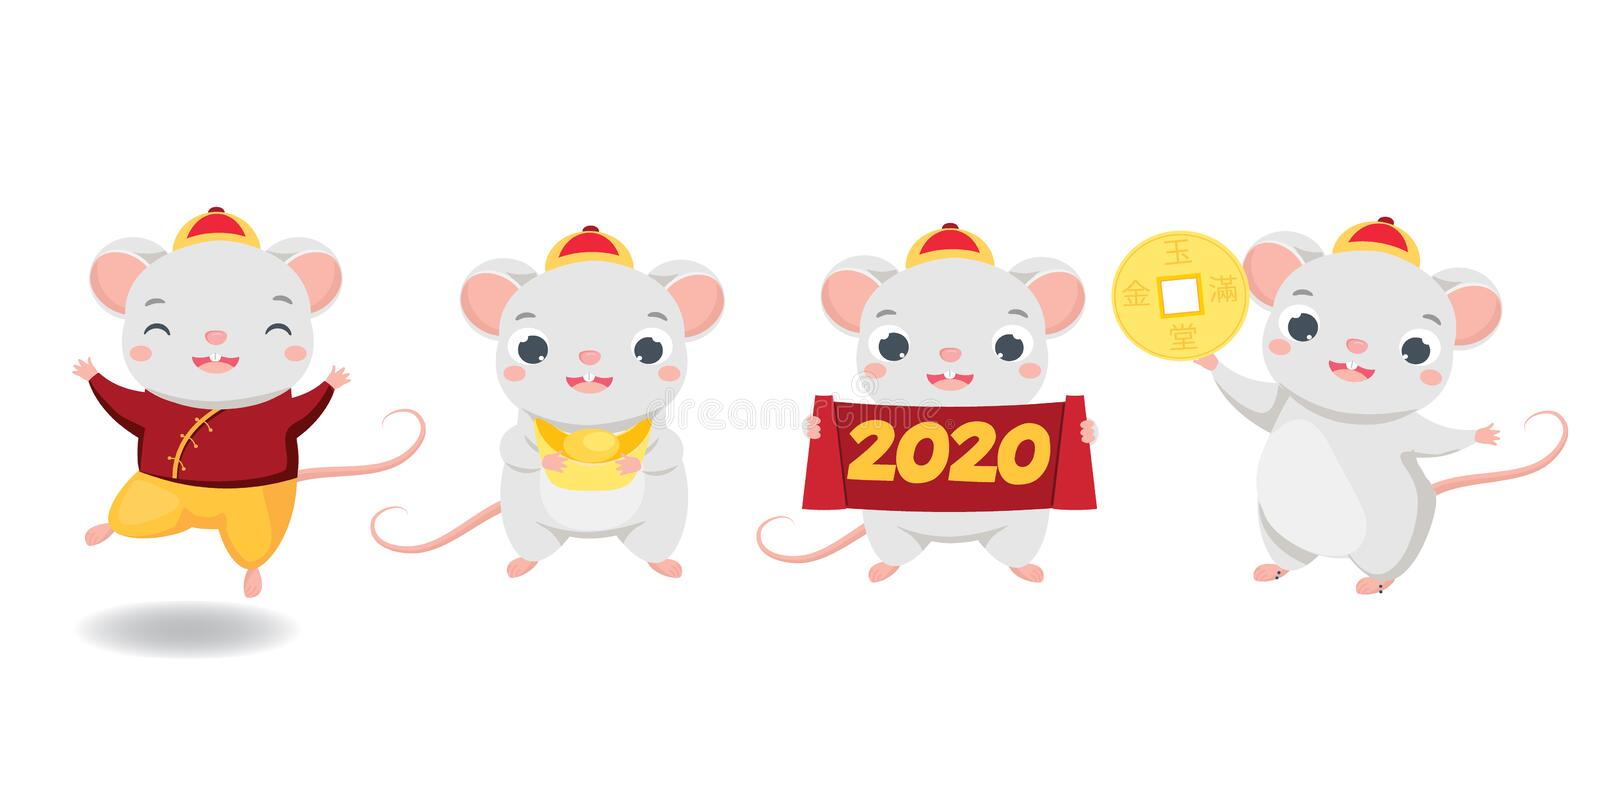 Chinese new year. 2020 happy cartoon mouse collection. illustration for calendars and cards. Funny rats with yuanbao, coin and vector illustration